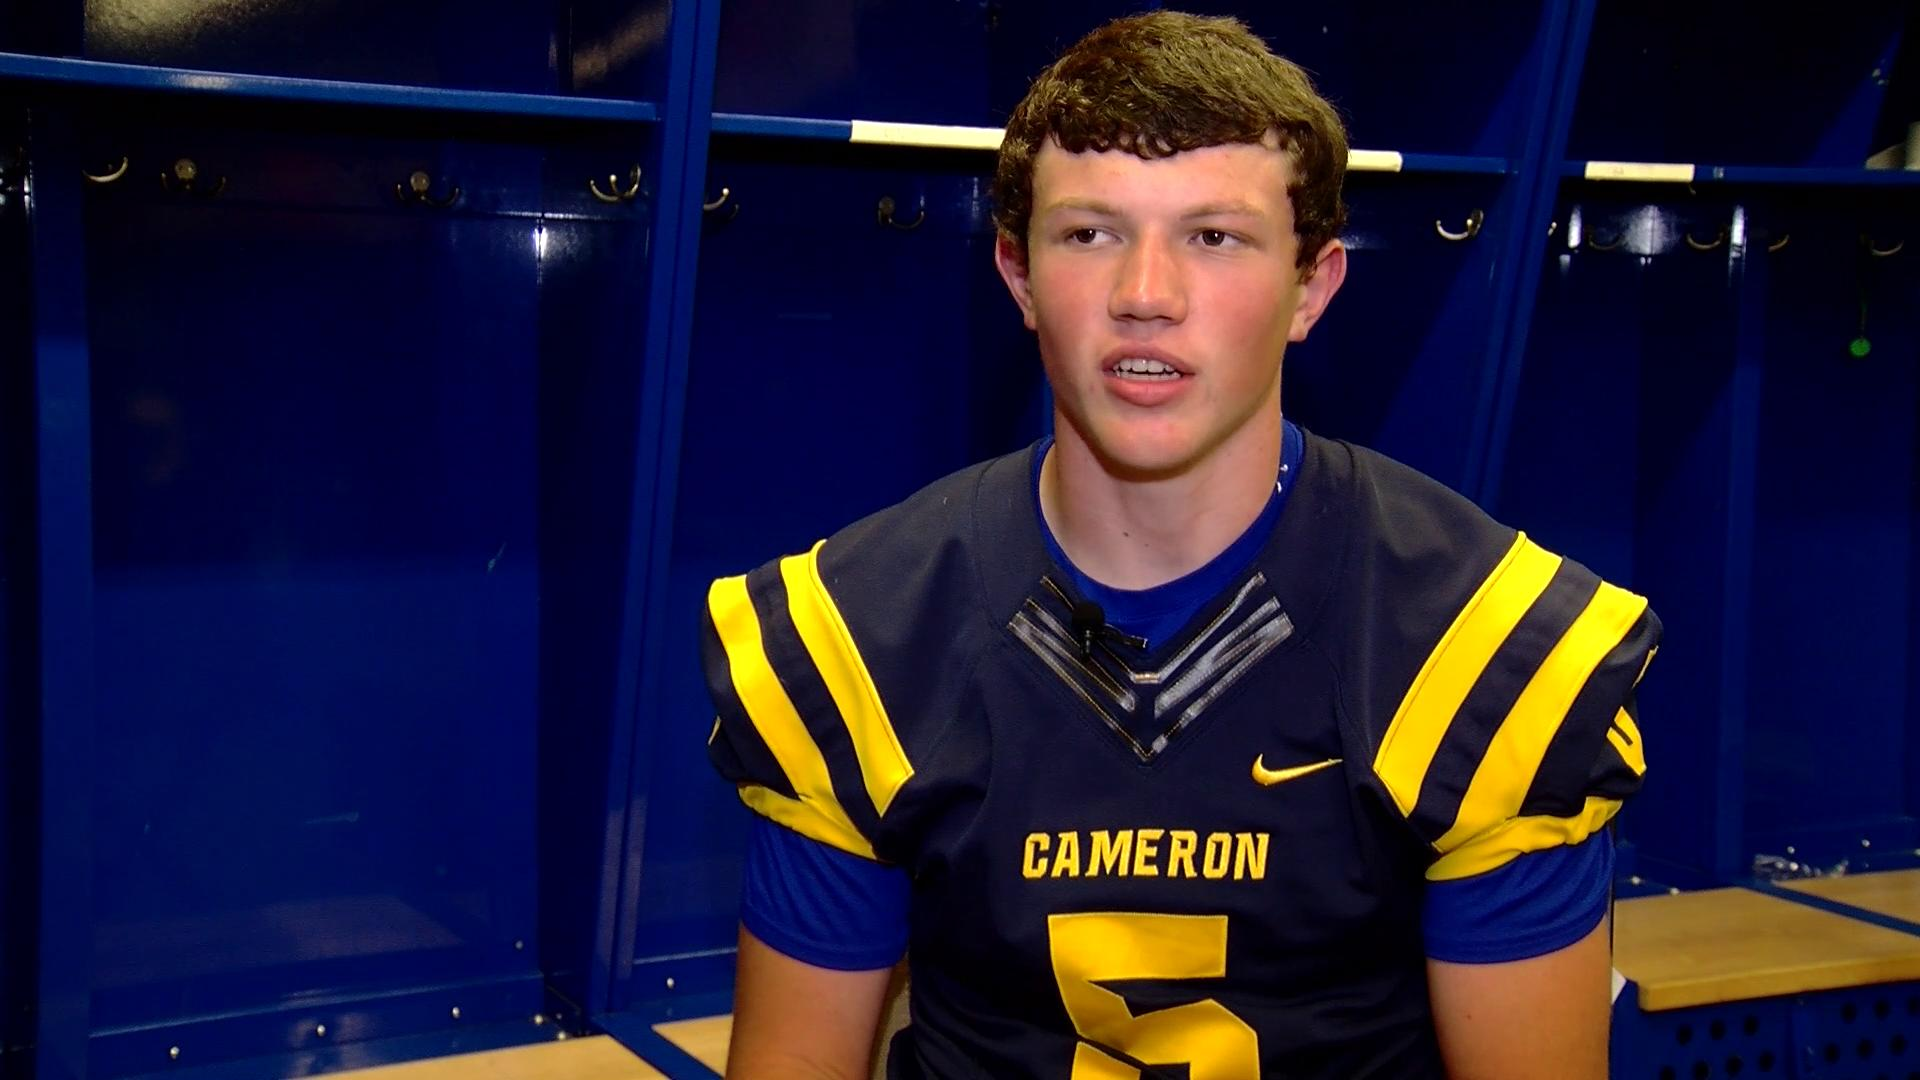 VIDEO 2016 Media Day: Trey Routt